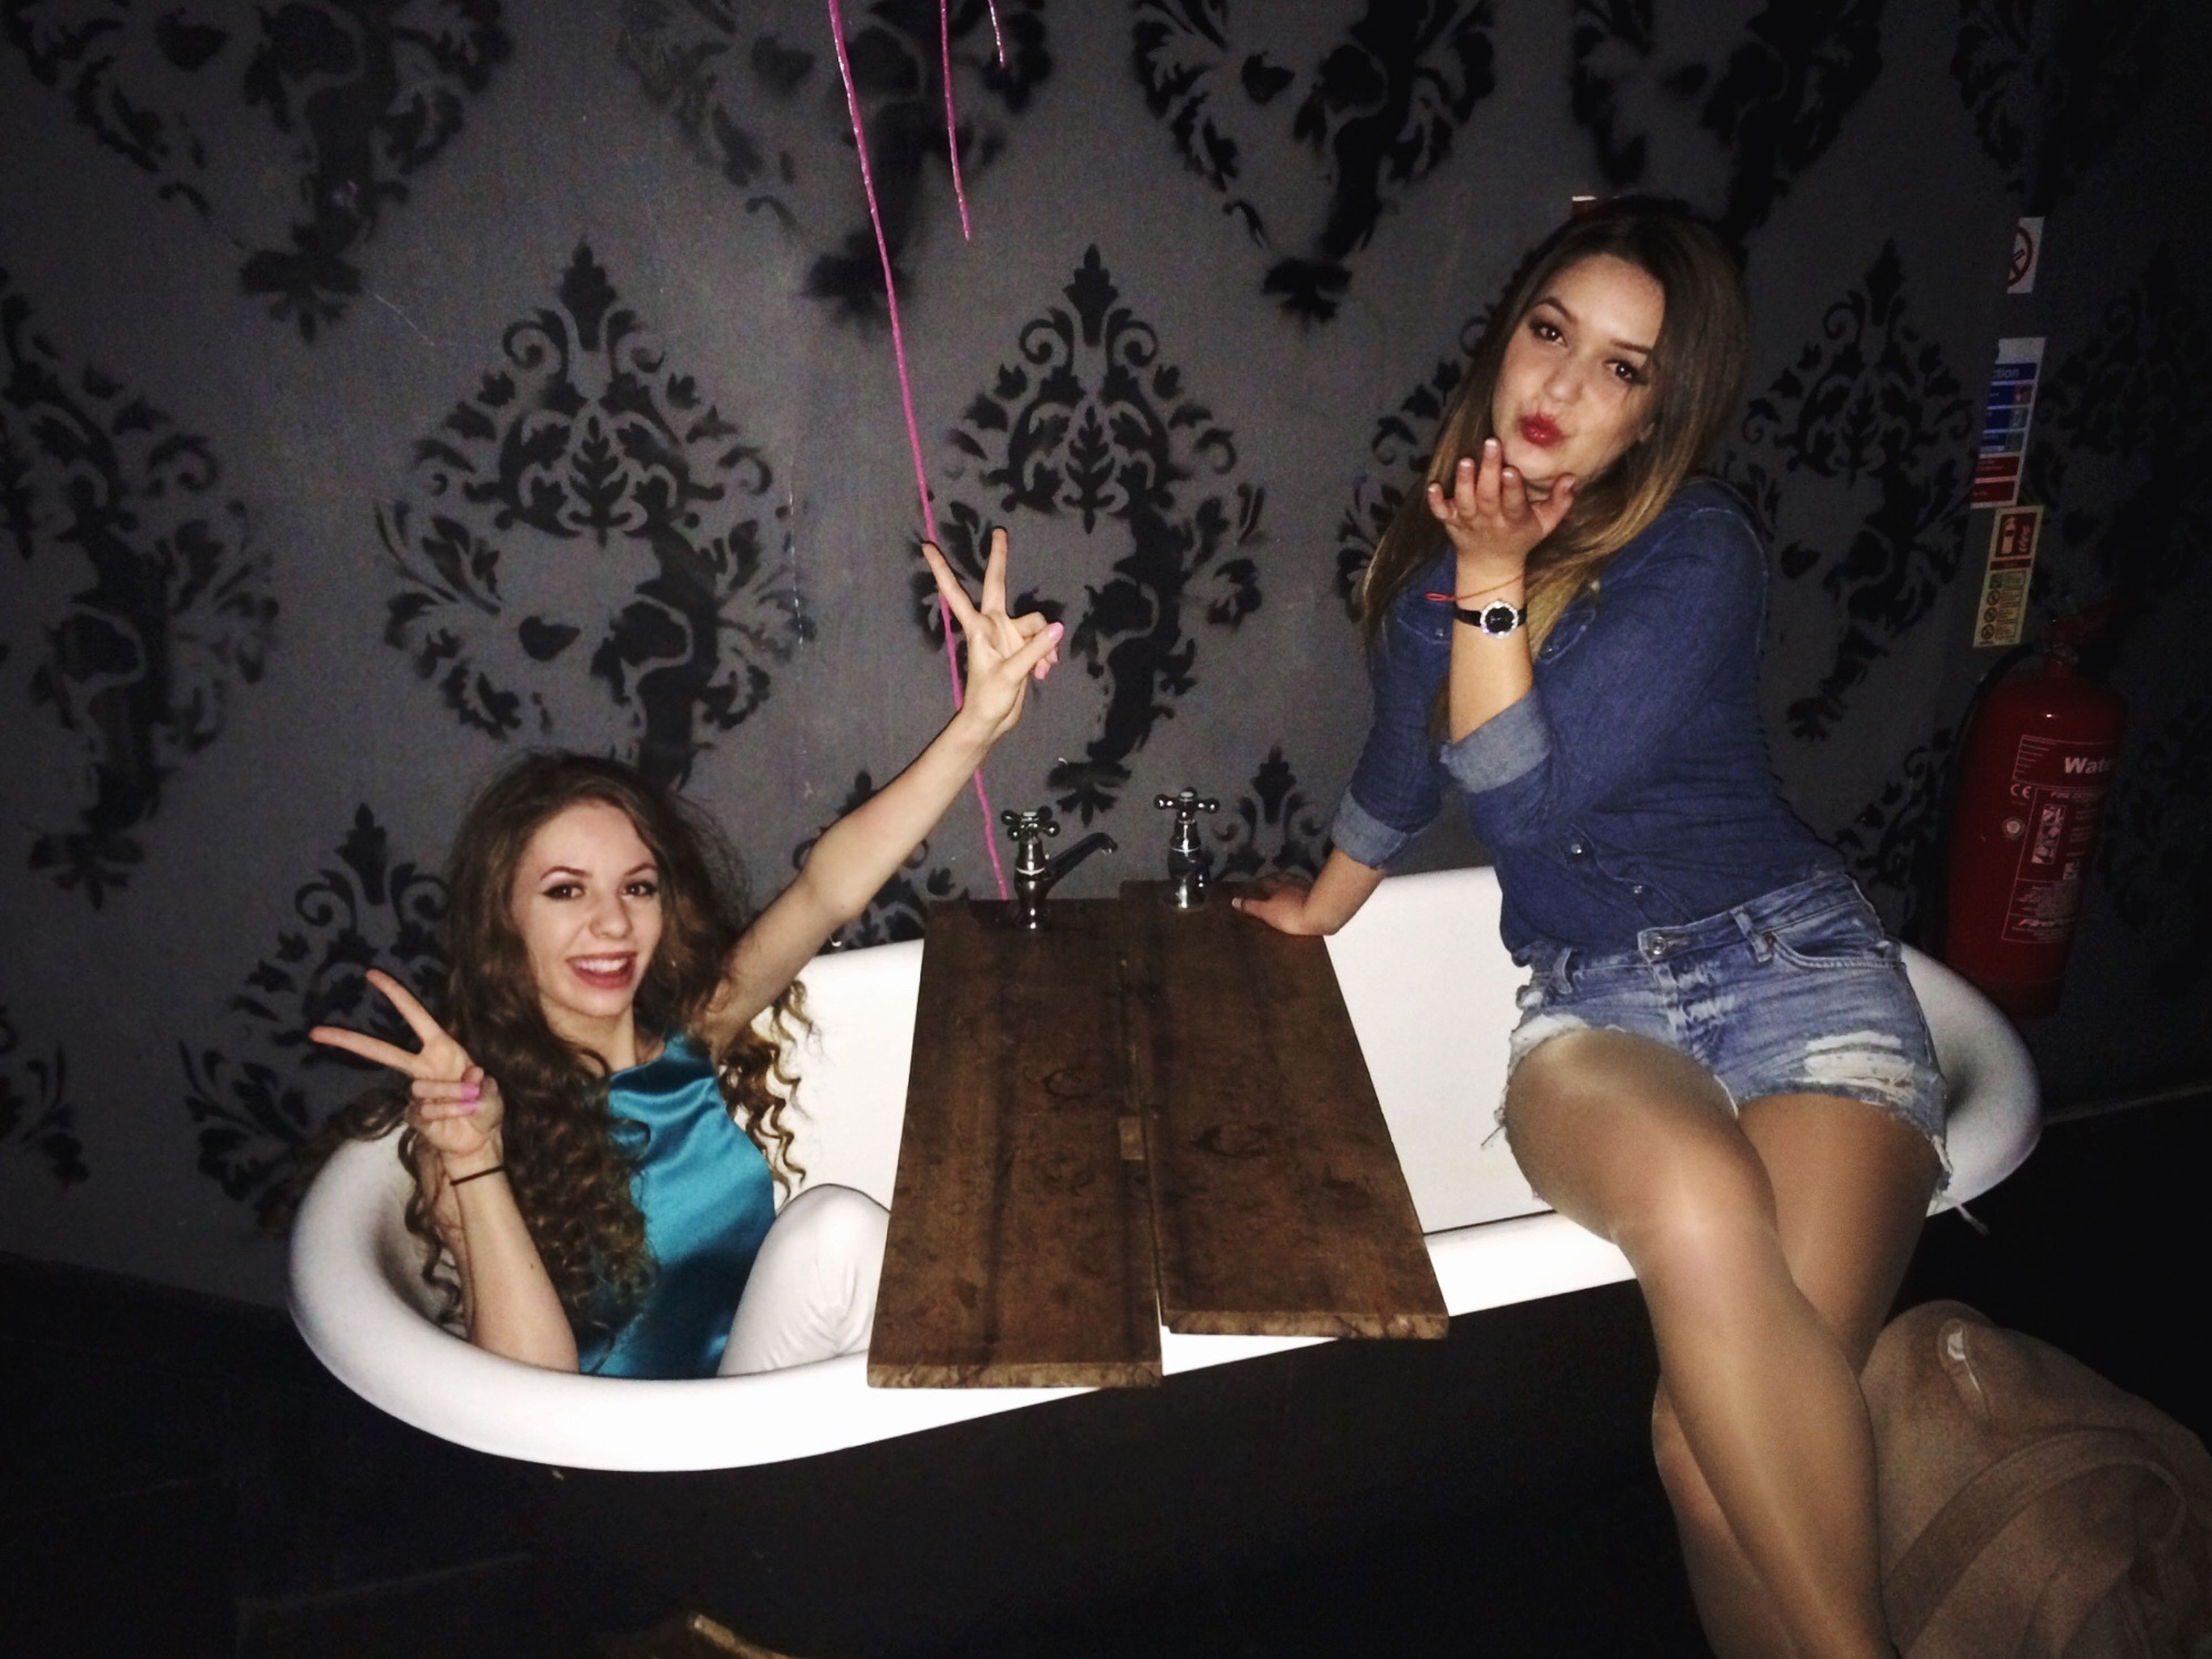 two people, young women, young adult, fun, adults only, adult, nightlife, sitting, women, lifestyles, party - social event, indoors, night, people, antler, friendship, alcohol, happy hour